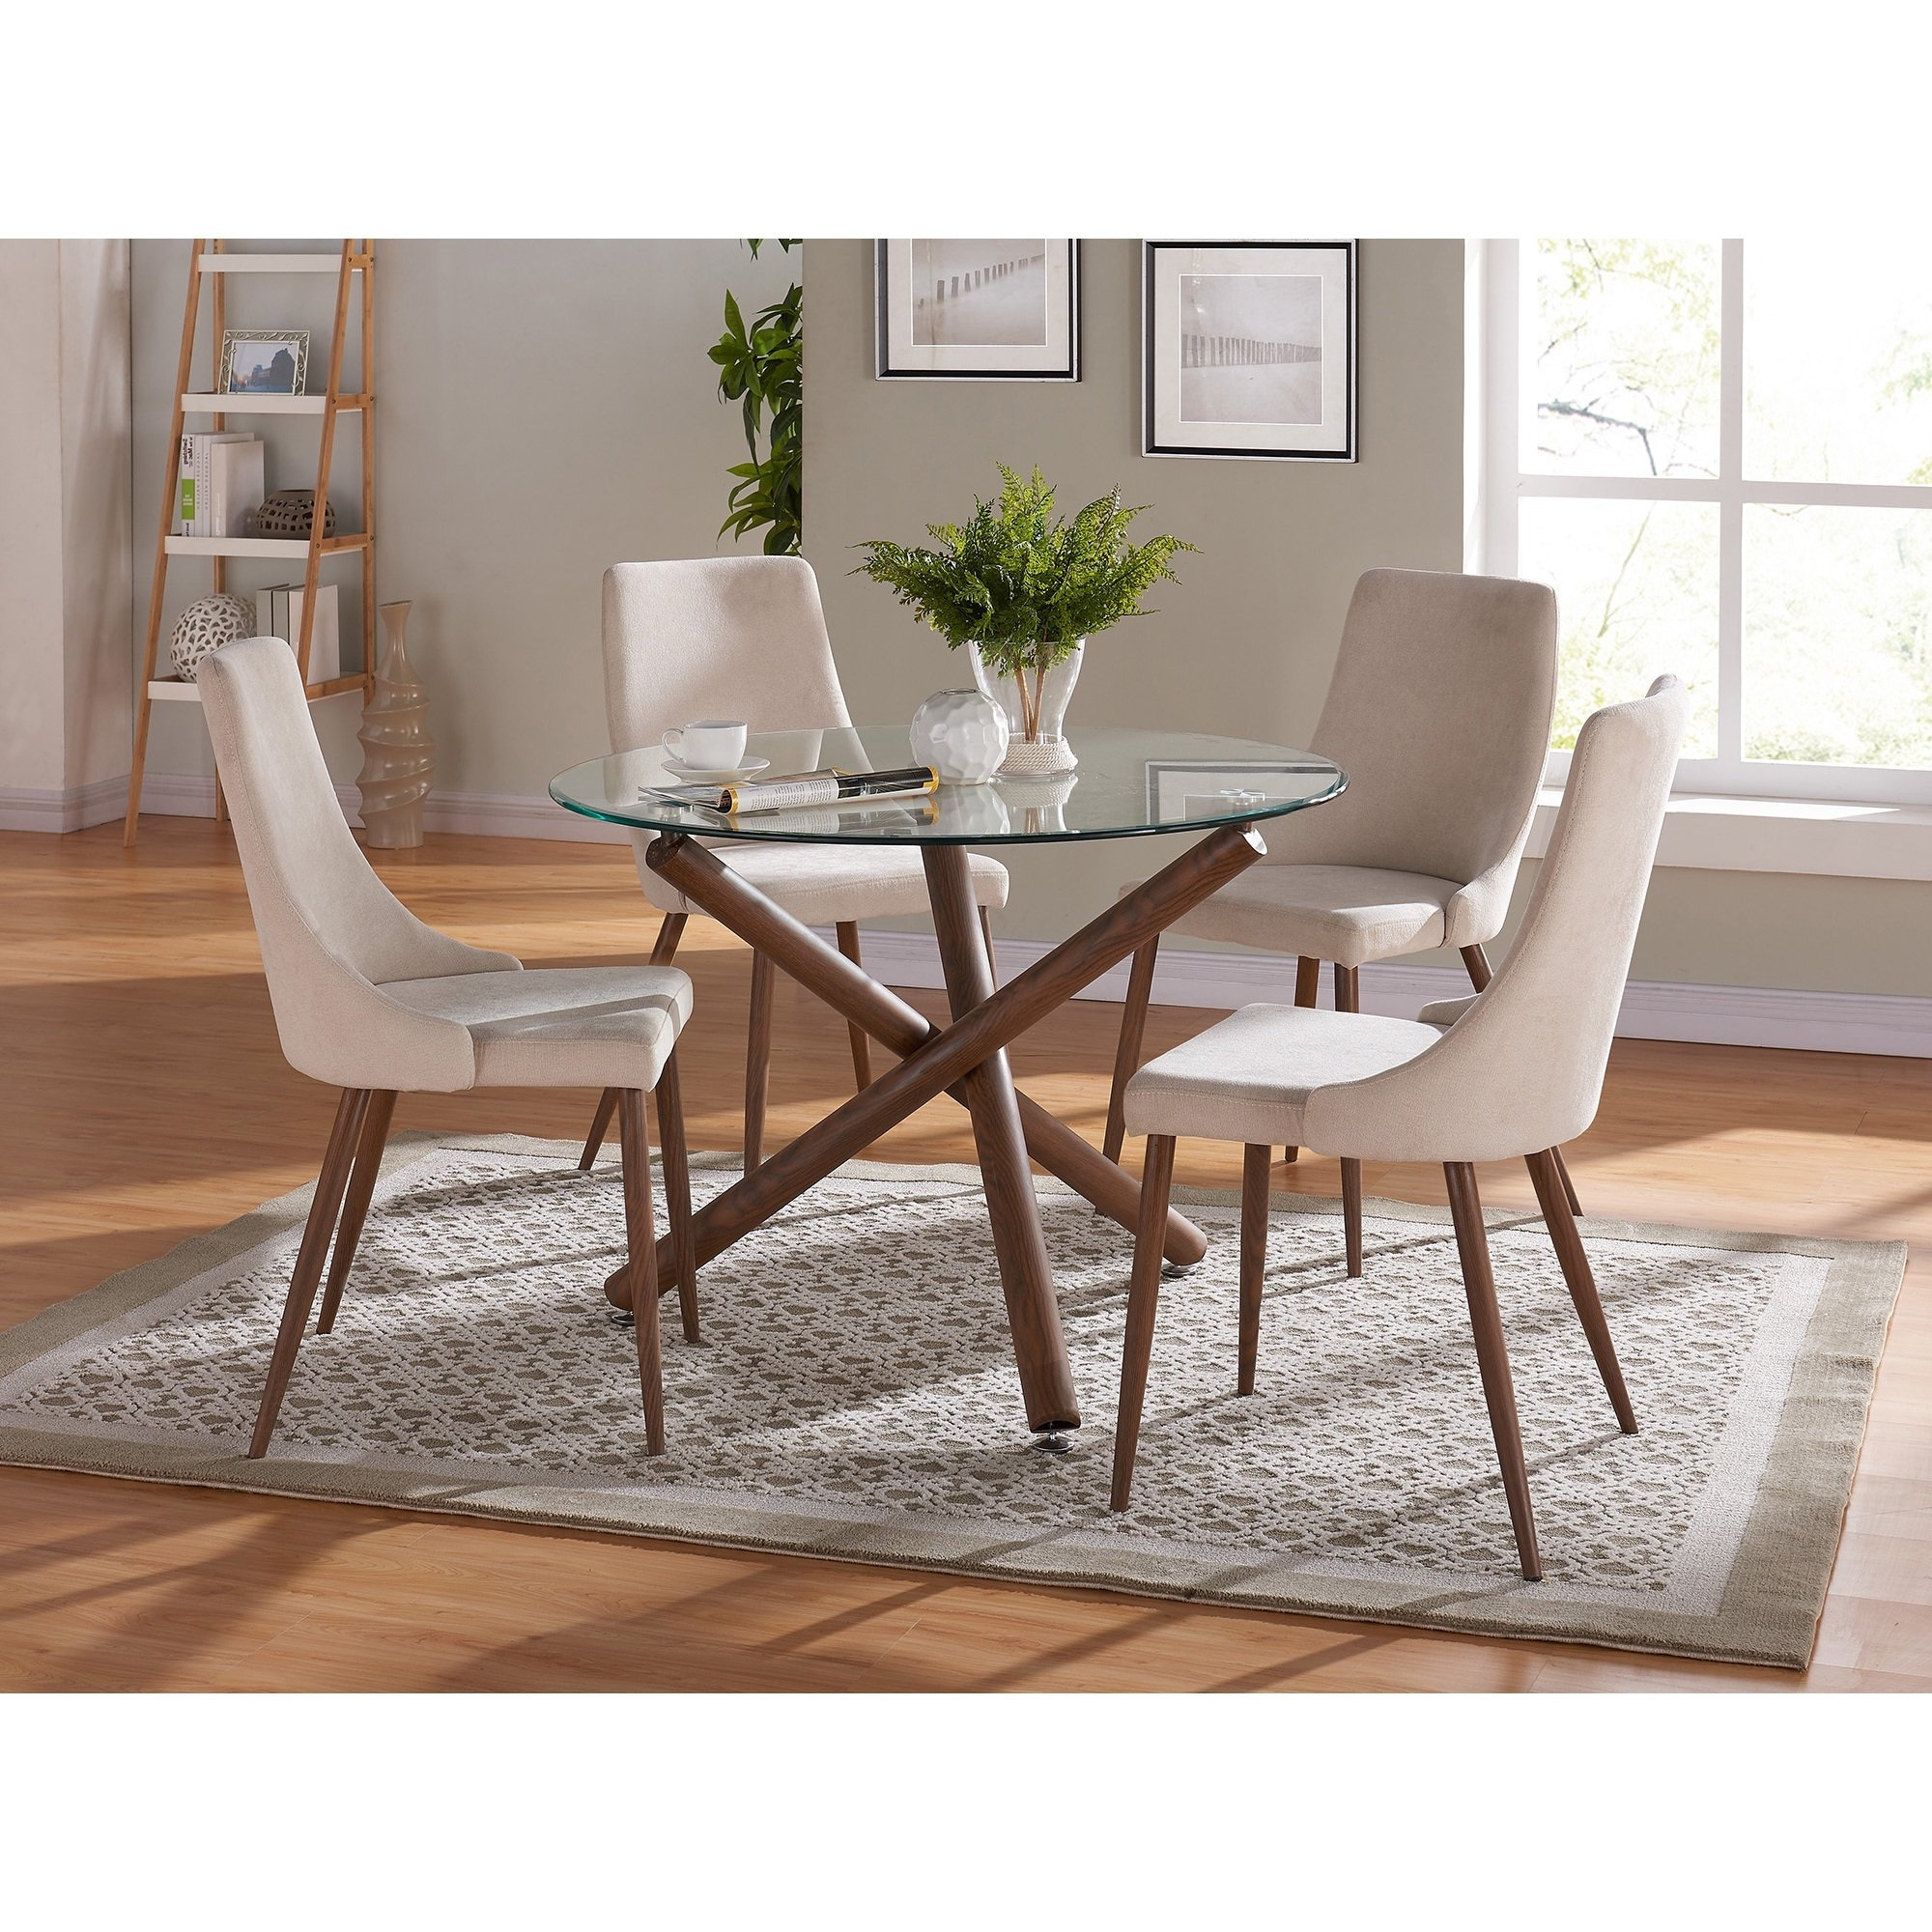 Most Recently Released Cora 7 Piece Dining Sets With Regard To Shop Carson Carrington Kaskinen Dining Chair (Set Of 2) – Free (View 3 of 25)